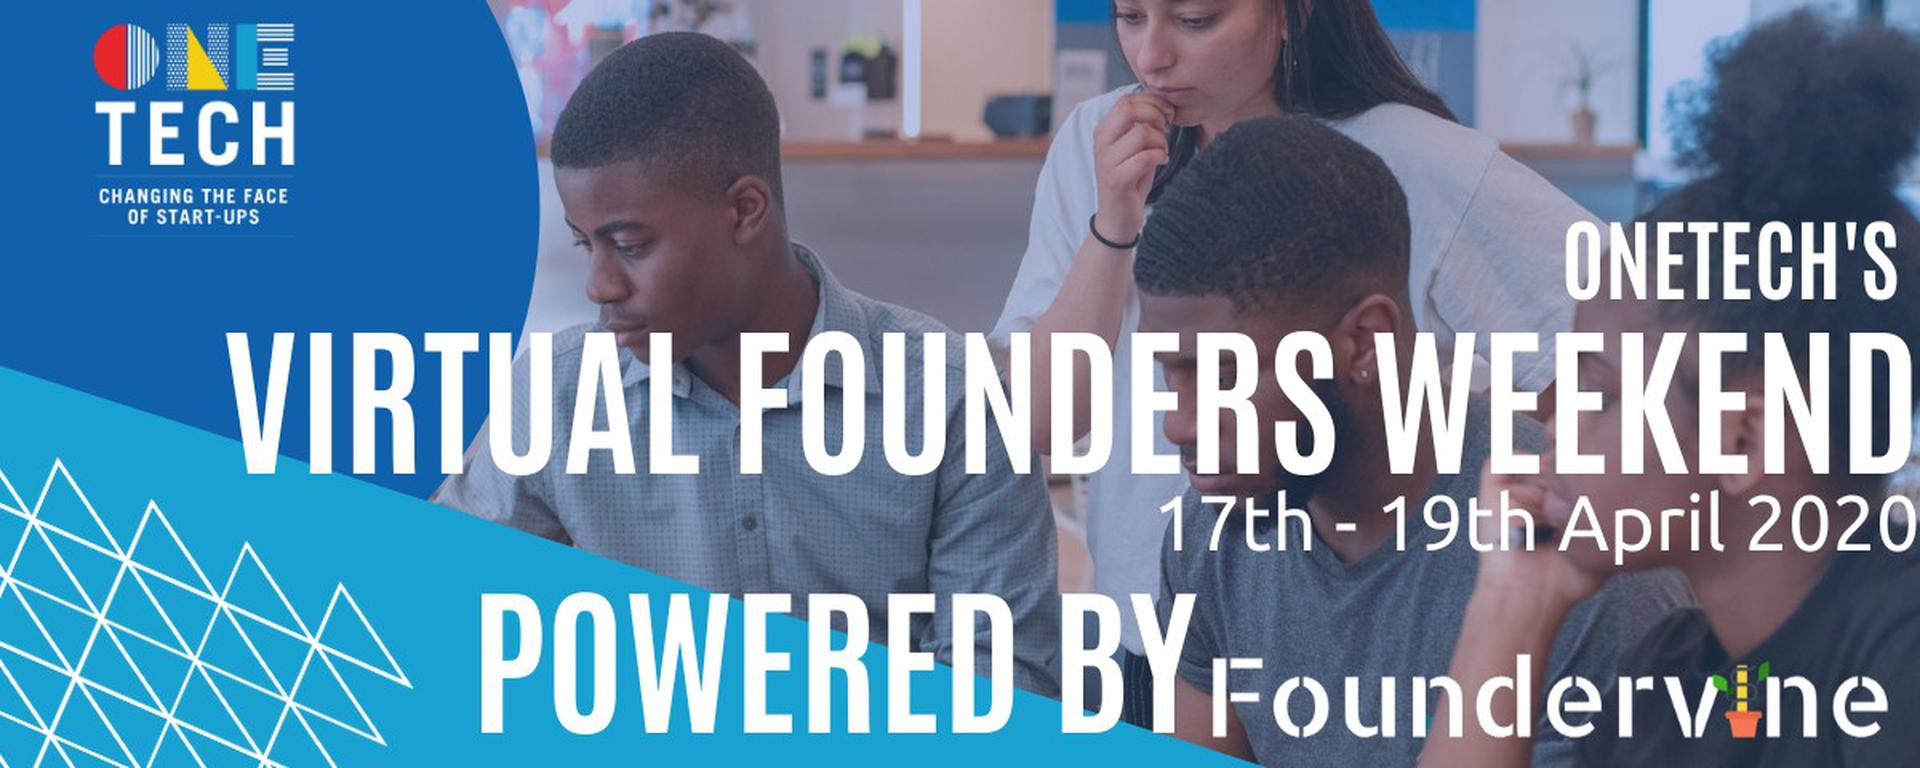 Foundervine - OneTech - Virtual Founders Weekend for 18 - 24 year olds Movemeback African initiative cover image